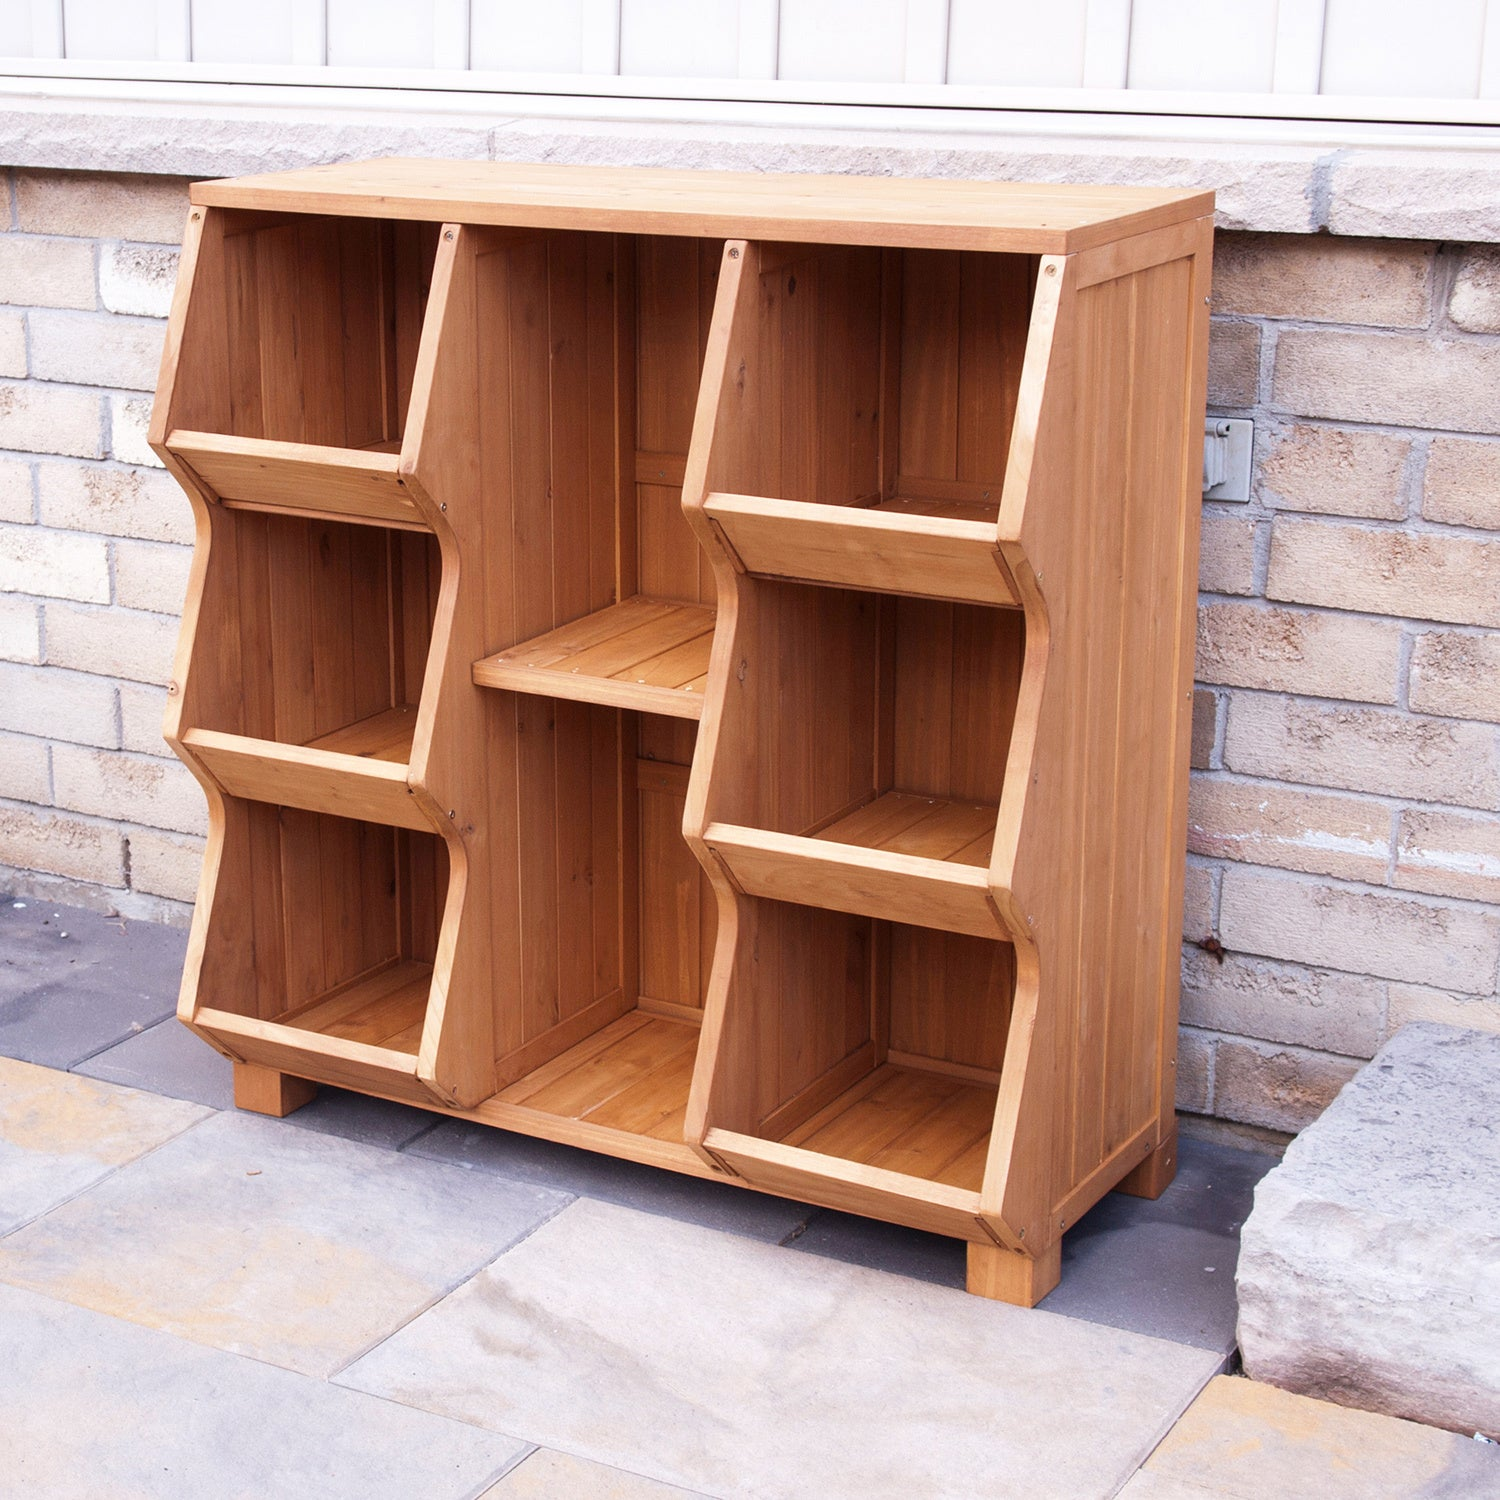 Shop Merry Products Fir Wood 6-shelf Storage Cubby - Free Shipping Today - Overstock.com - 6085187 & Shop Merry Products Fir Wood 6-shelf Storage Cubby - Free Shipping ...